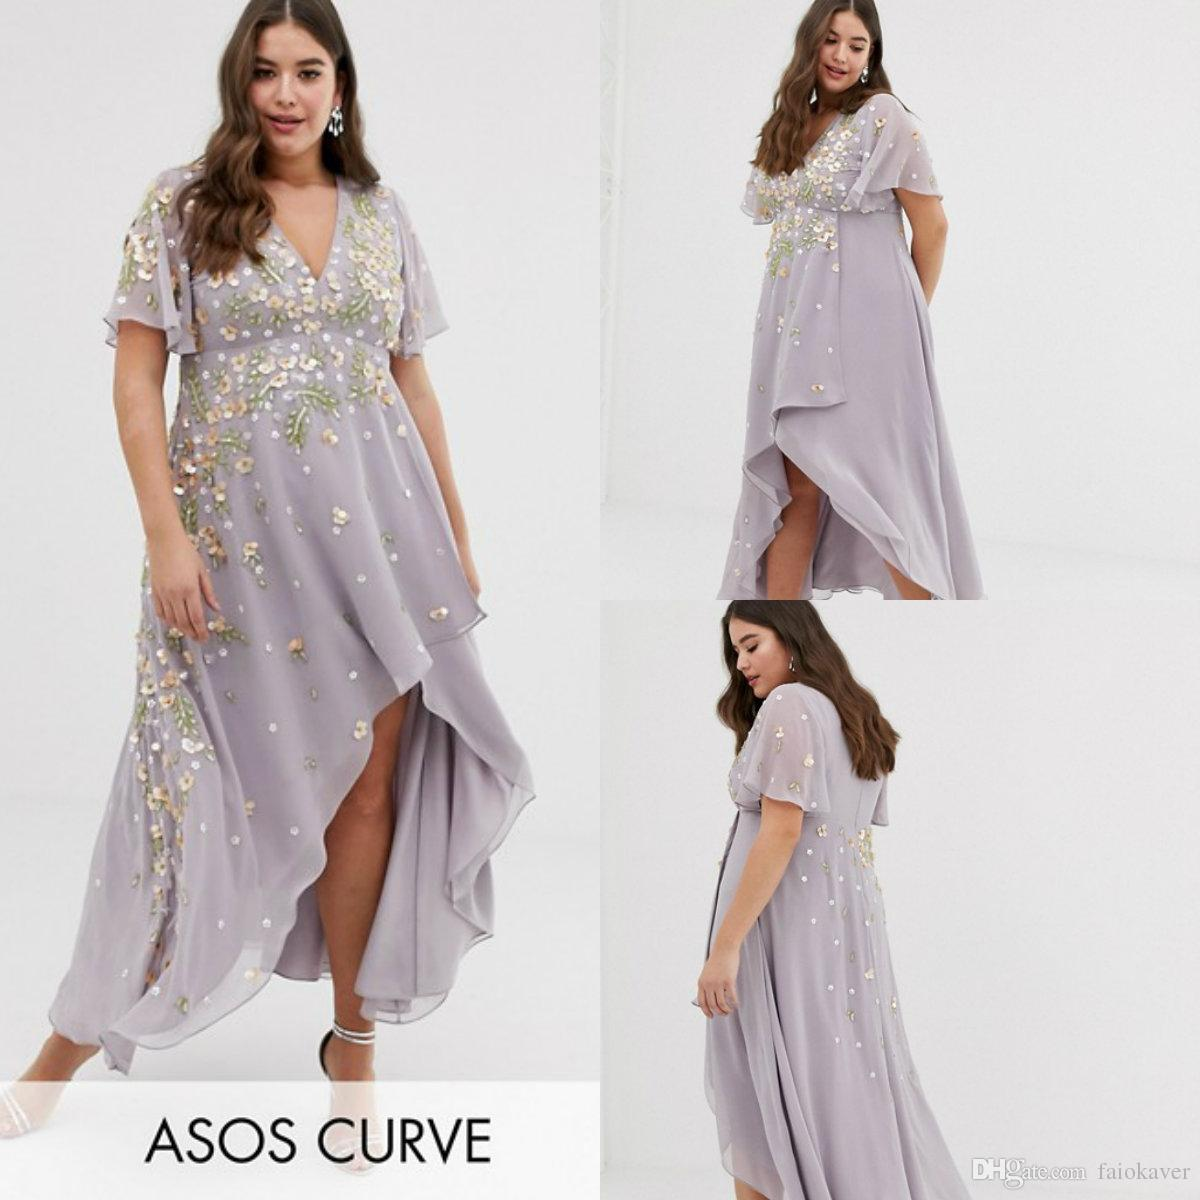 790afa0daab58 2019 Plus Size Prom Dresses A Line V Neck Lace Appliqued Short Sleeve Ankle  Length Cocktail Dress Custom Made Evening Gowns Formal Prom Dresses Glitter  Prom ...